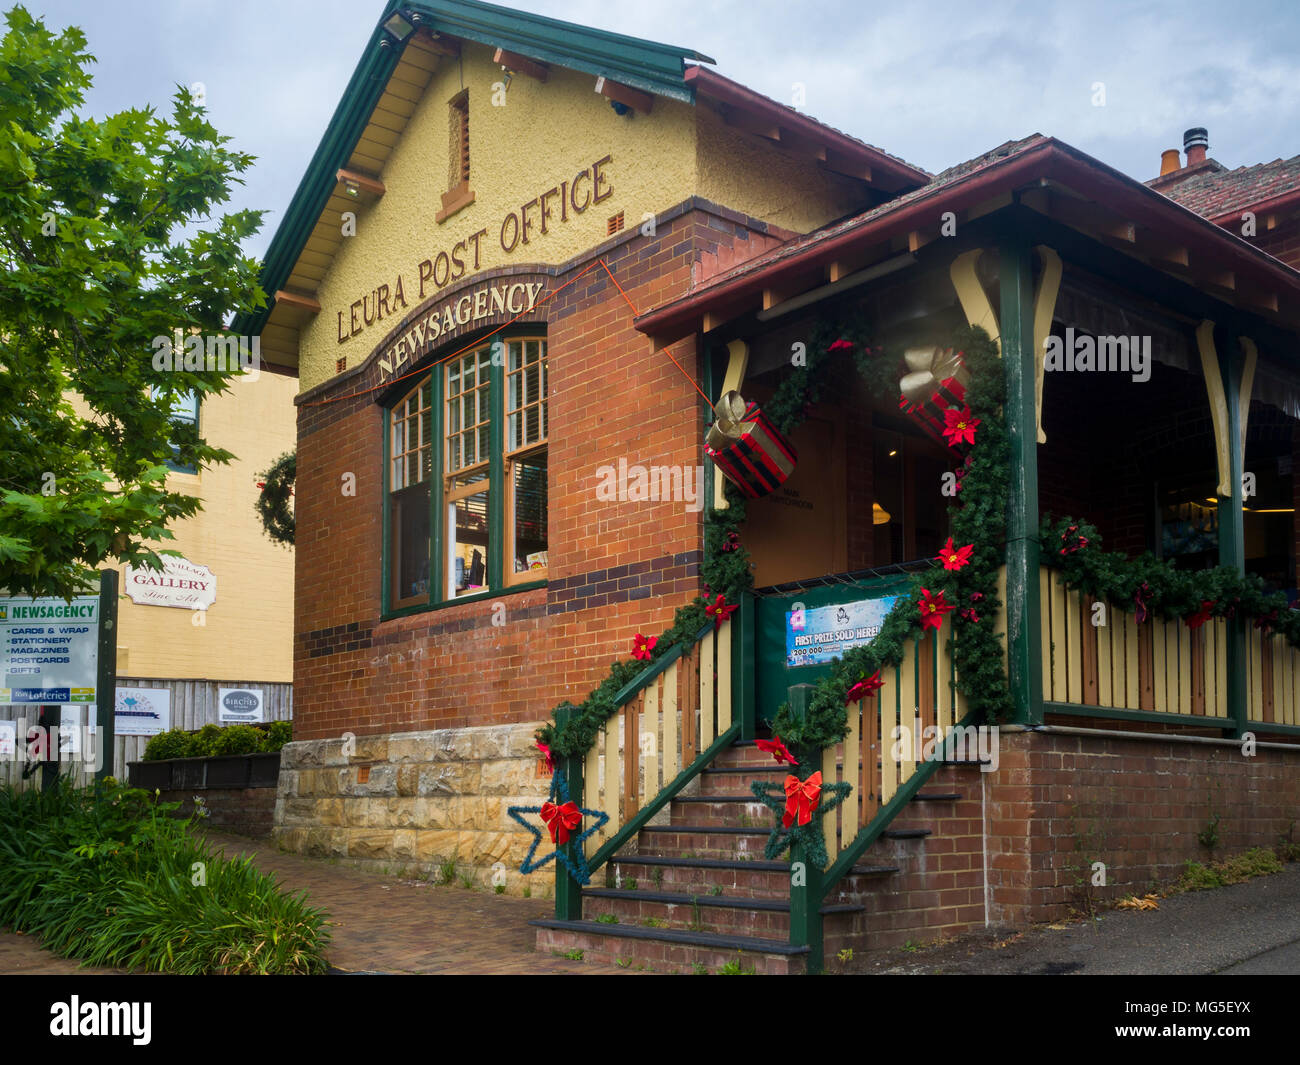 Leura Post Office and Newsagency, Leura Village, Blue Mountains, New South Wales, Australia - Stock Image